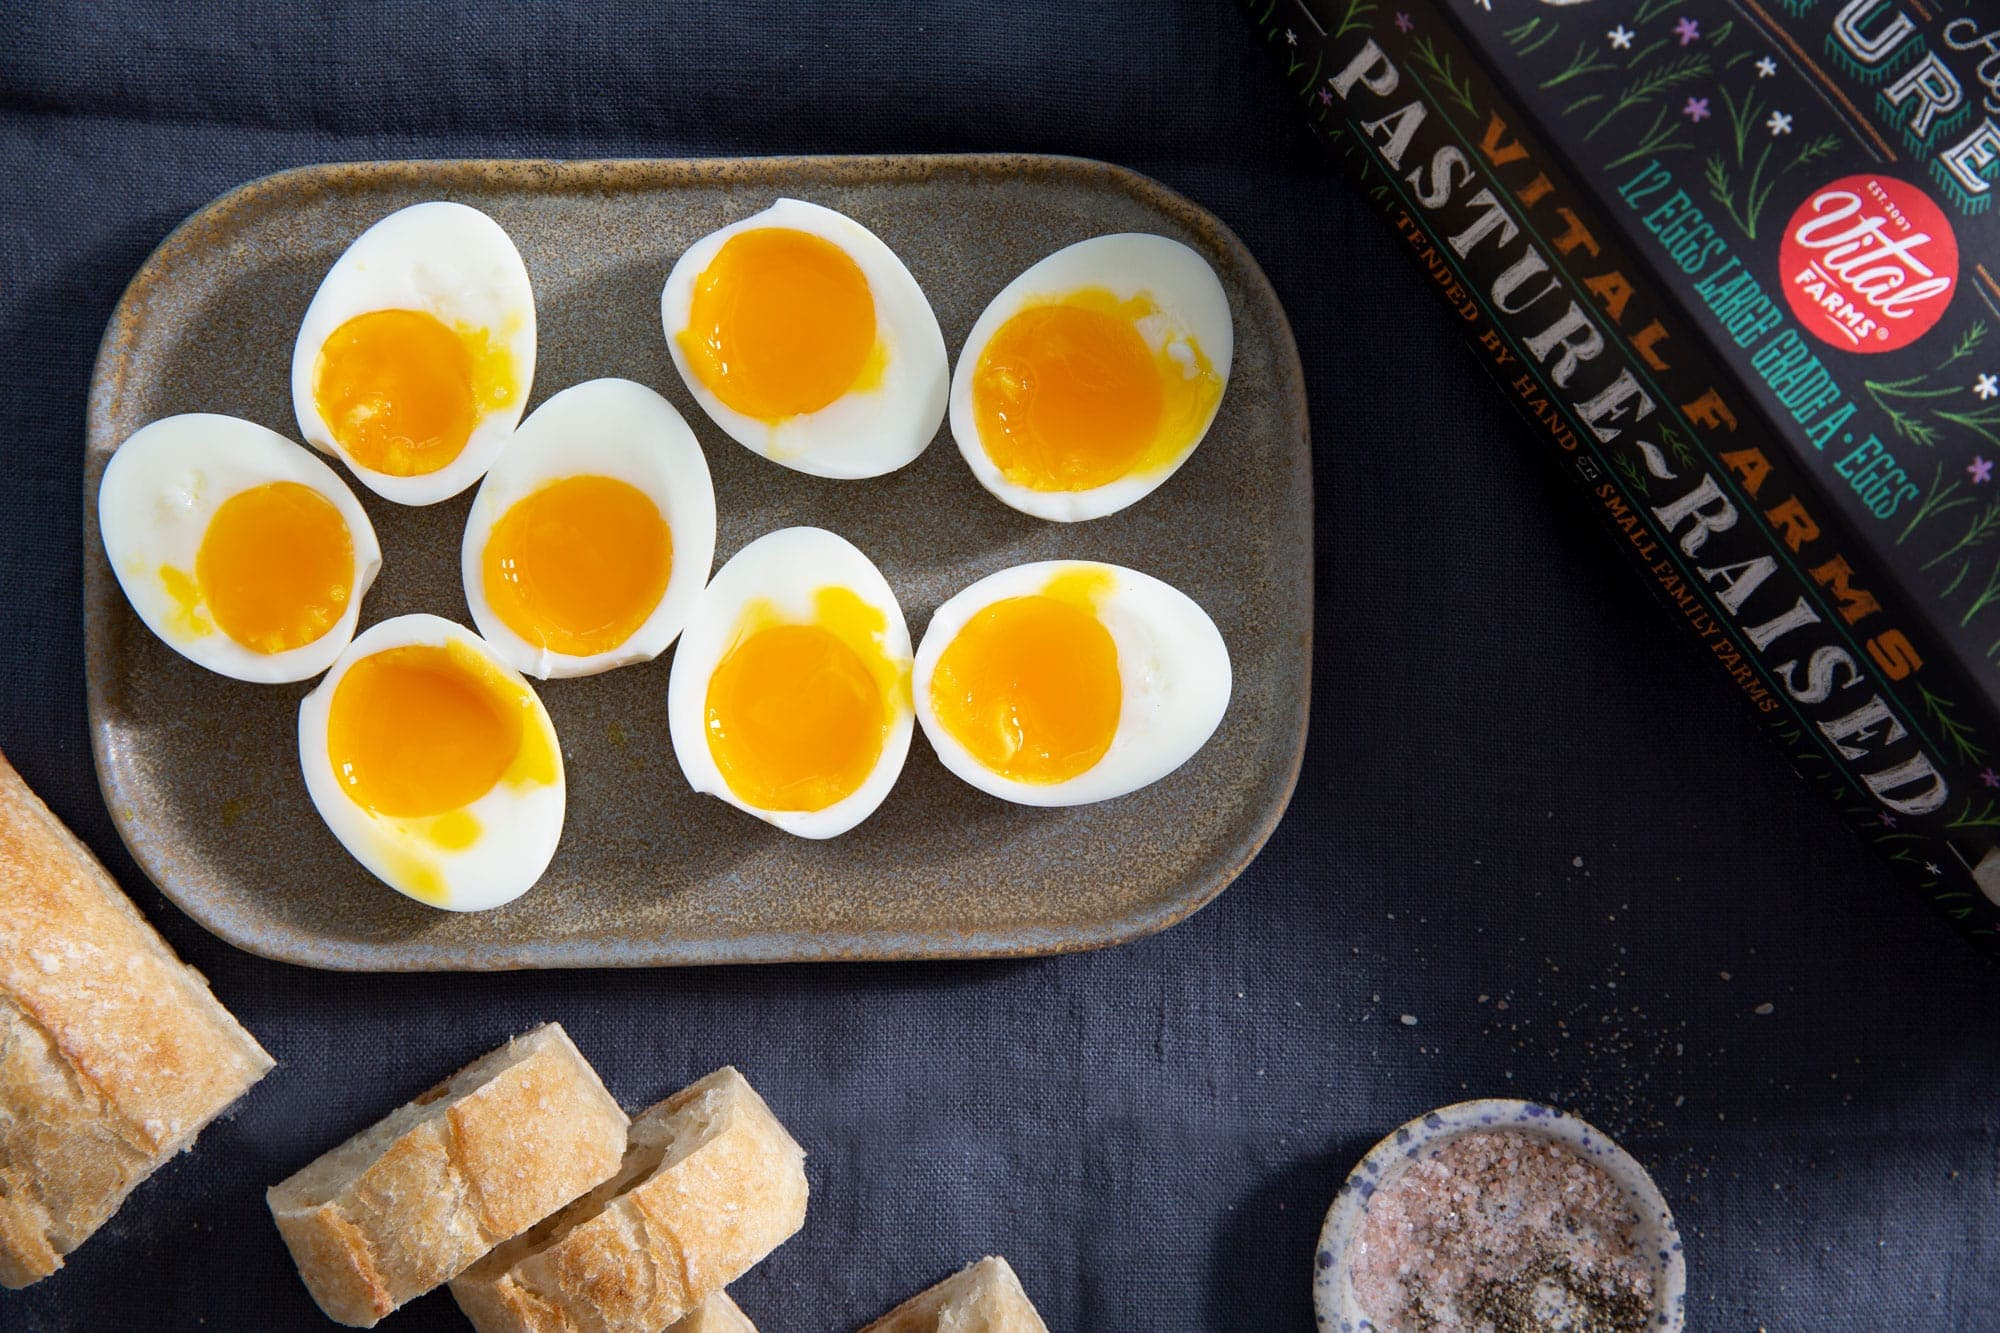 Four soft boiled eggs cut in half and displayed on on a table with a blue tablecloth with slices of baguette and salt cellar and a carton of Vital Farms Pasture raised eggs.